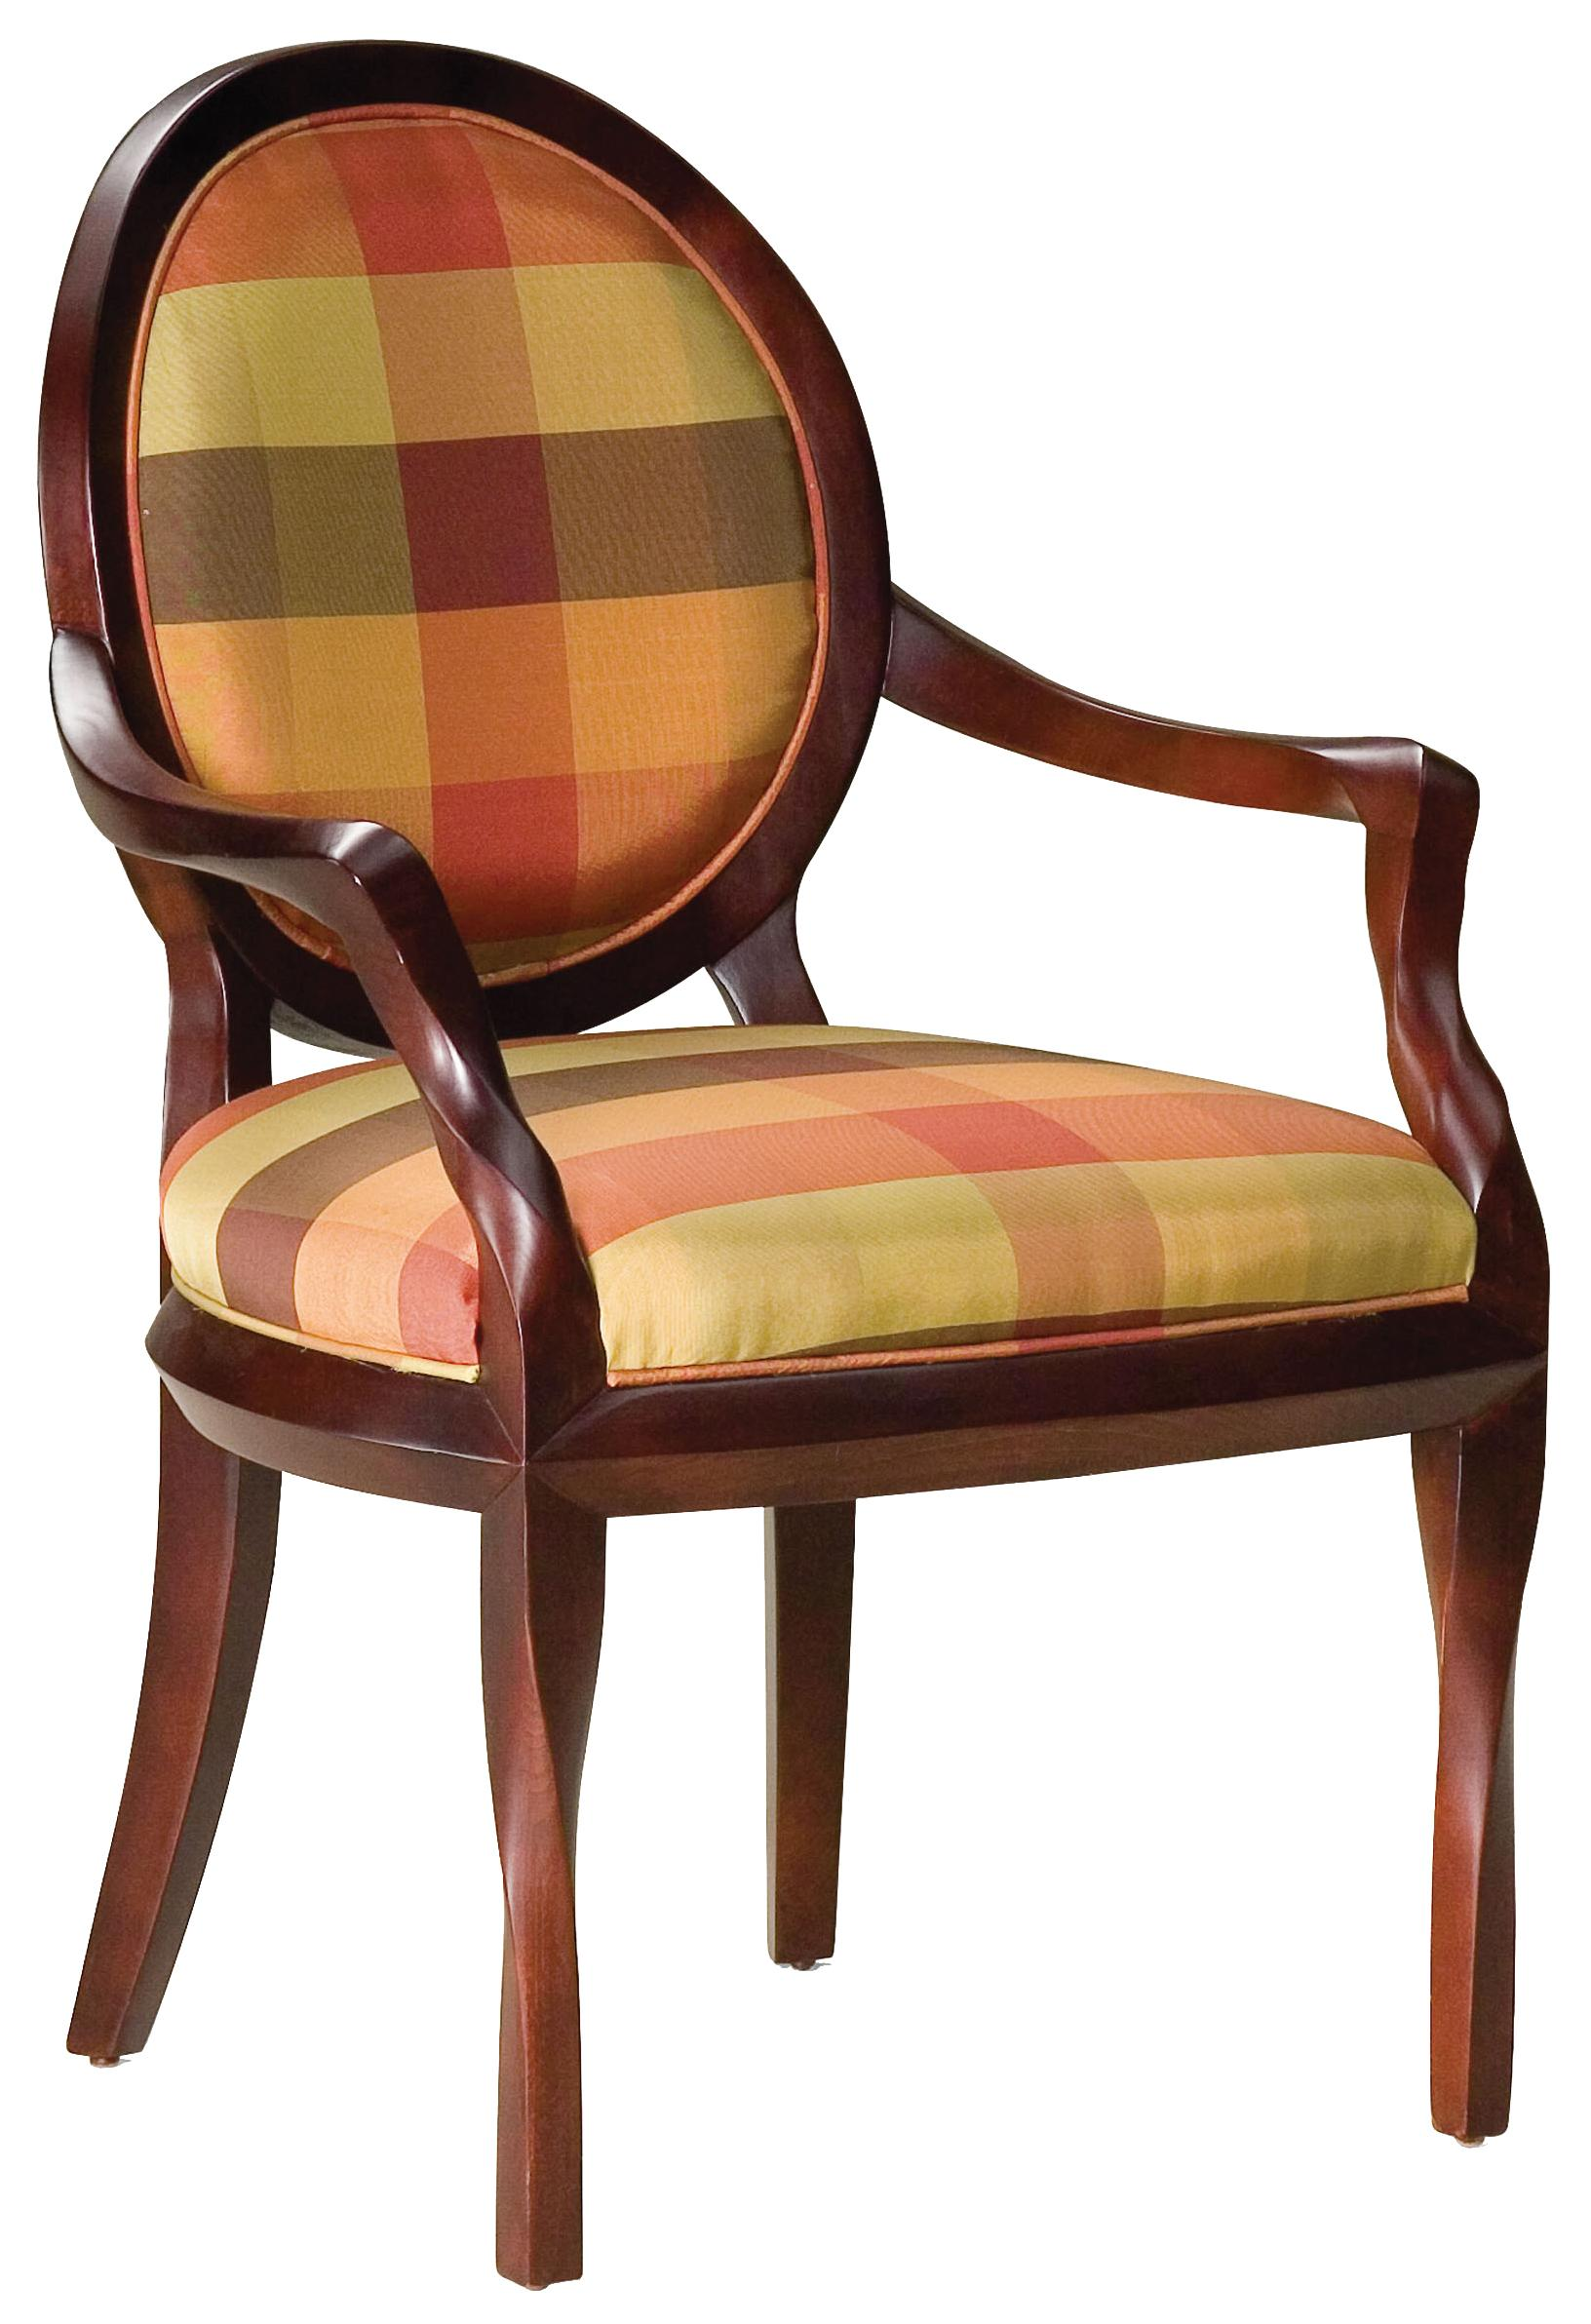 Fairfield Chairs Upholstered & Cut-Out Back Chair - Item Number: 5485-01